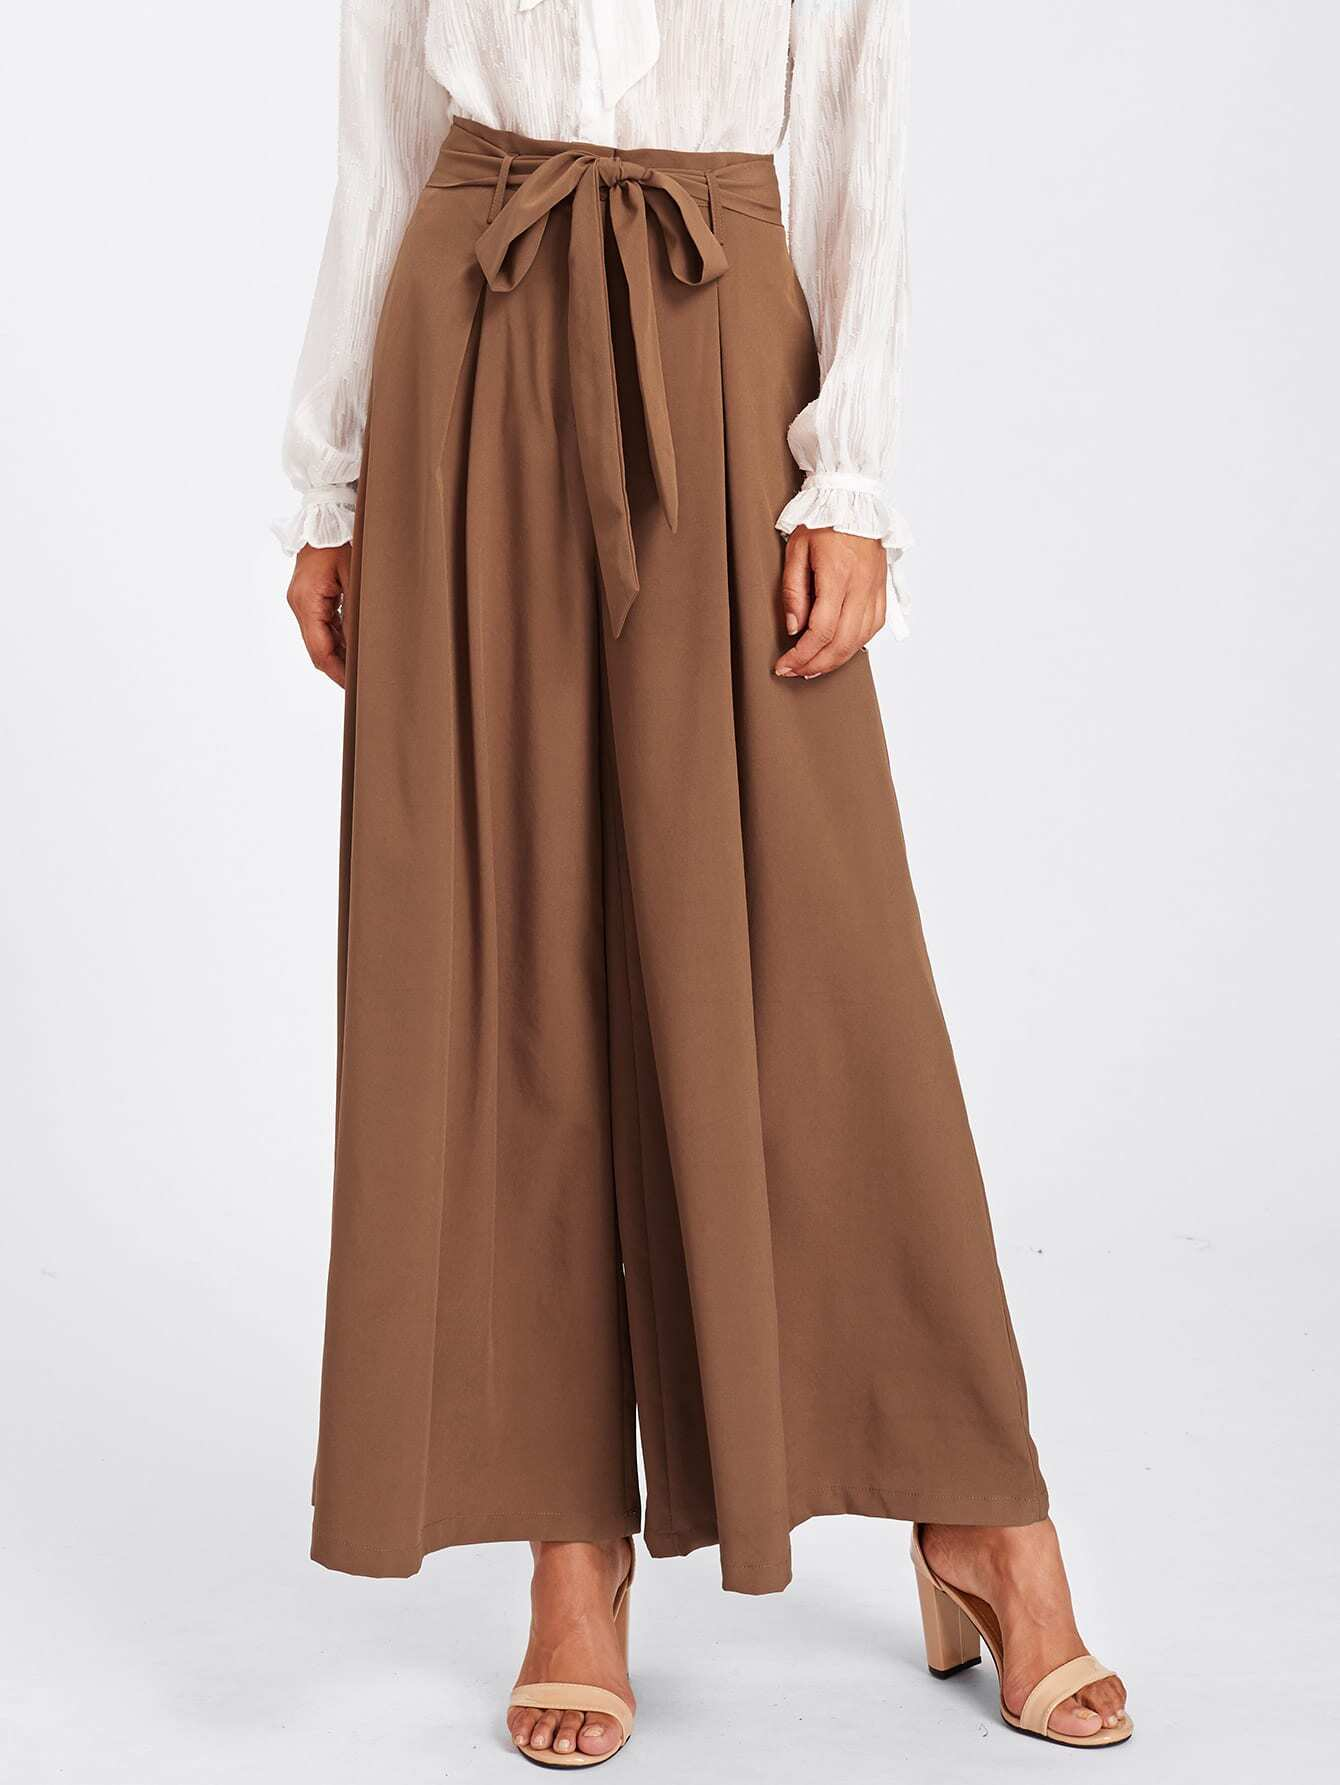 Image of Self Belted Skirt Palazzo Pants